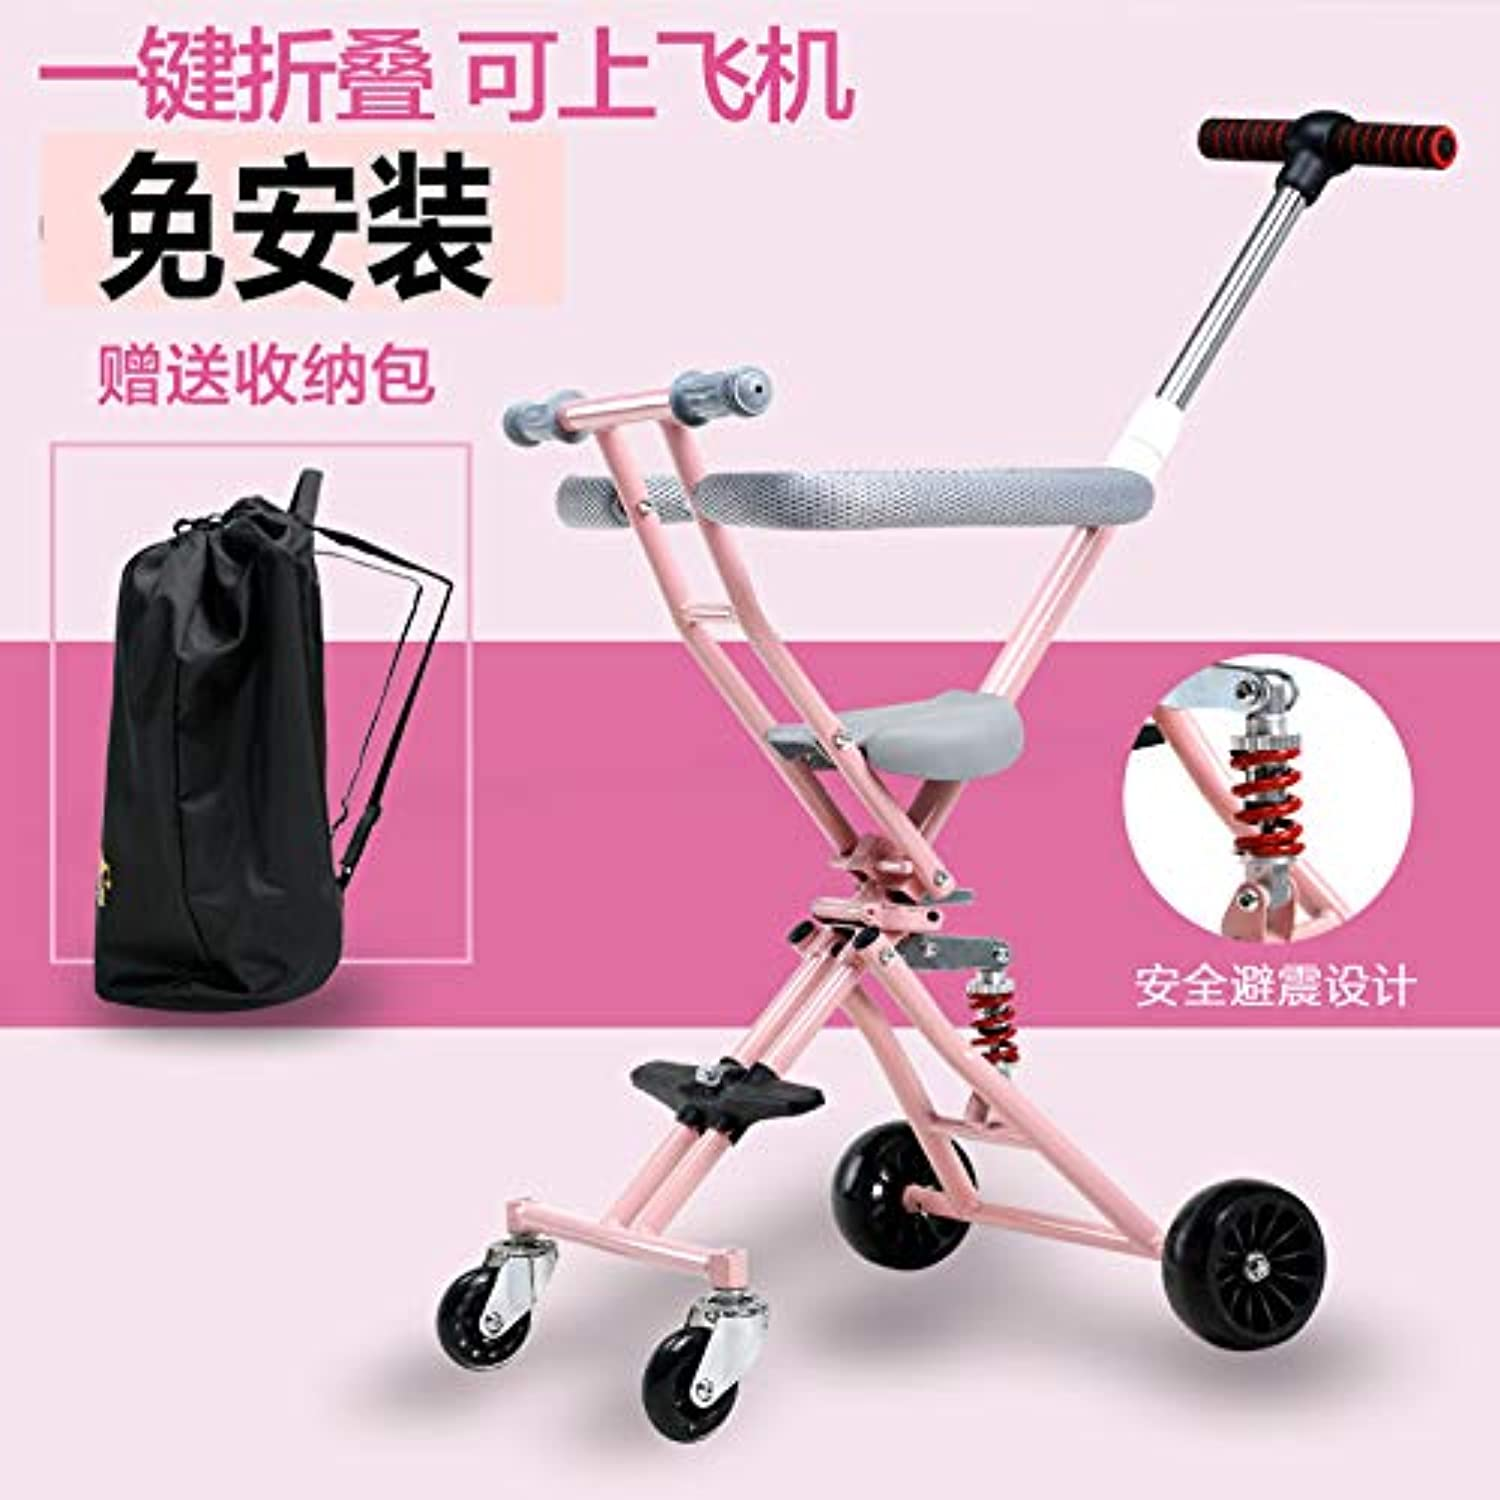 Jinming Stroll Slip Baby Tricycle carts Artifact 1-2-3-6 Baby Infant Portable Folding Quality Consumer Exposure